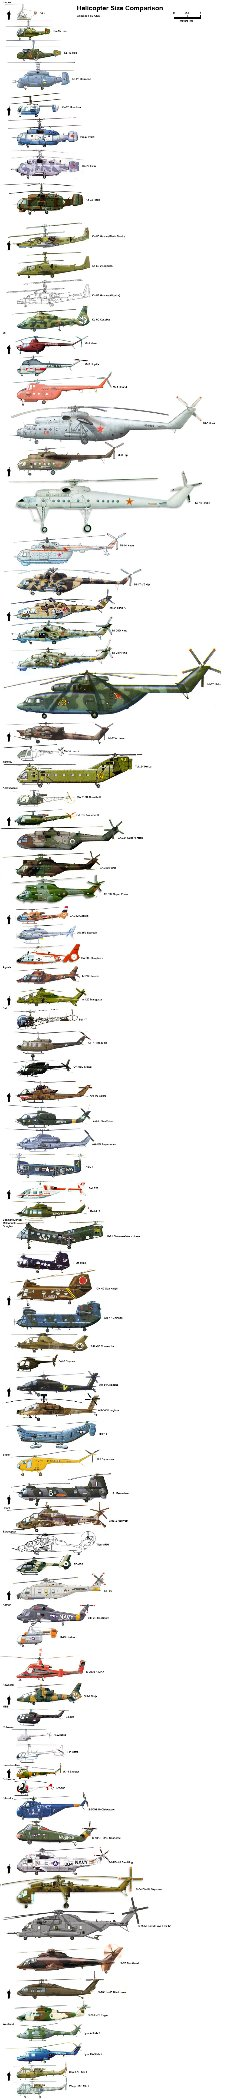 compare_taille_helicopter.jpg